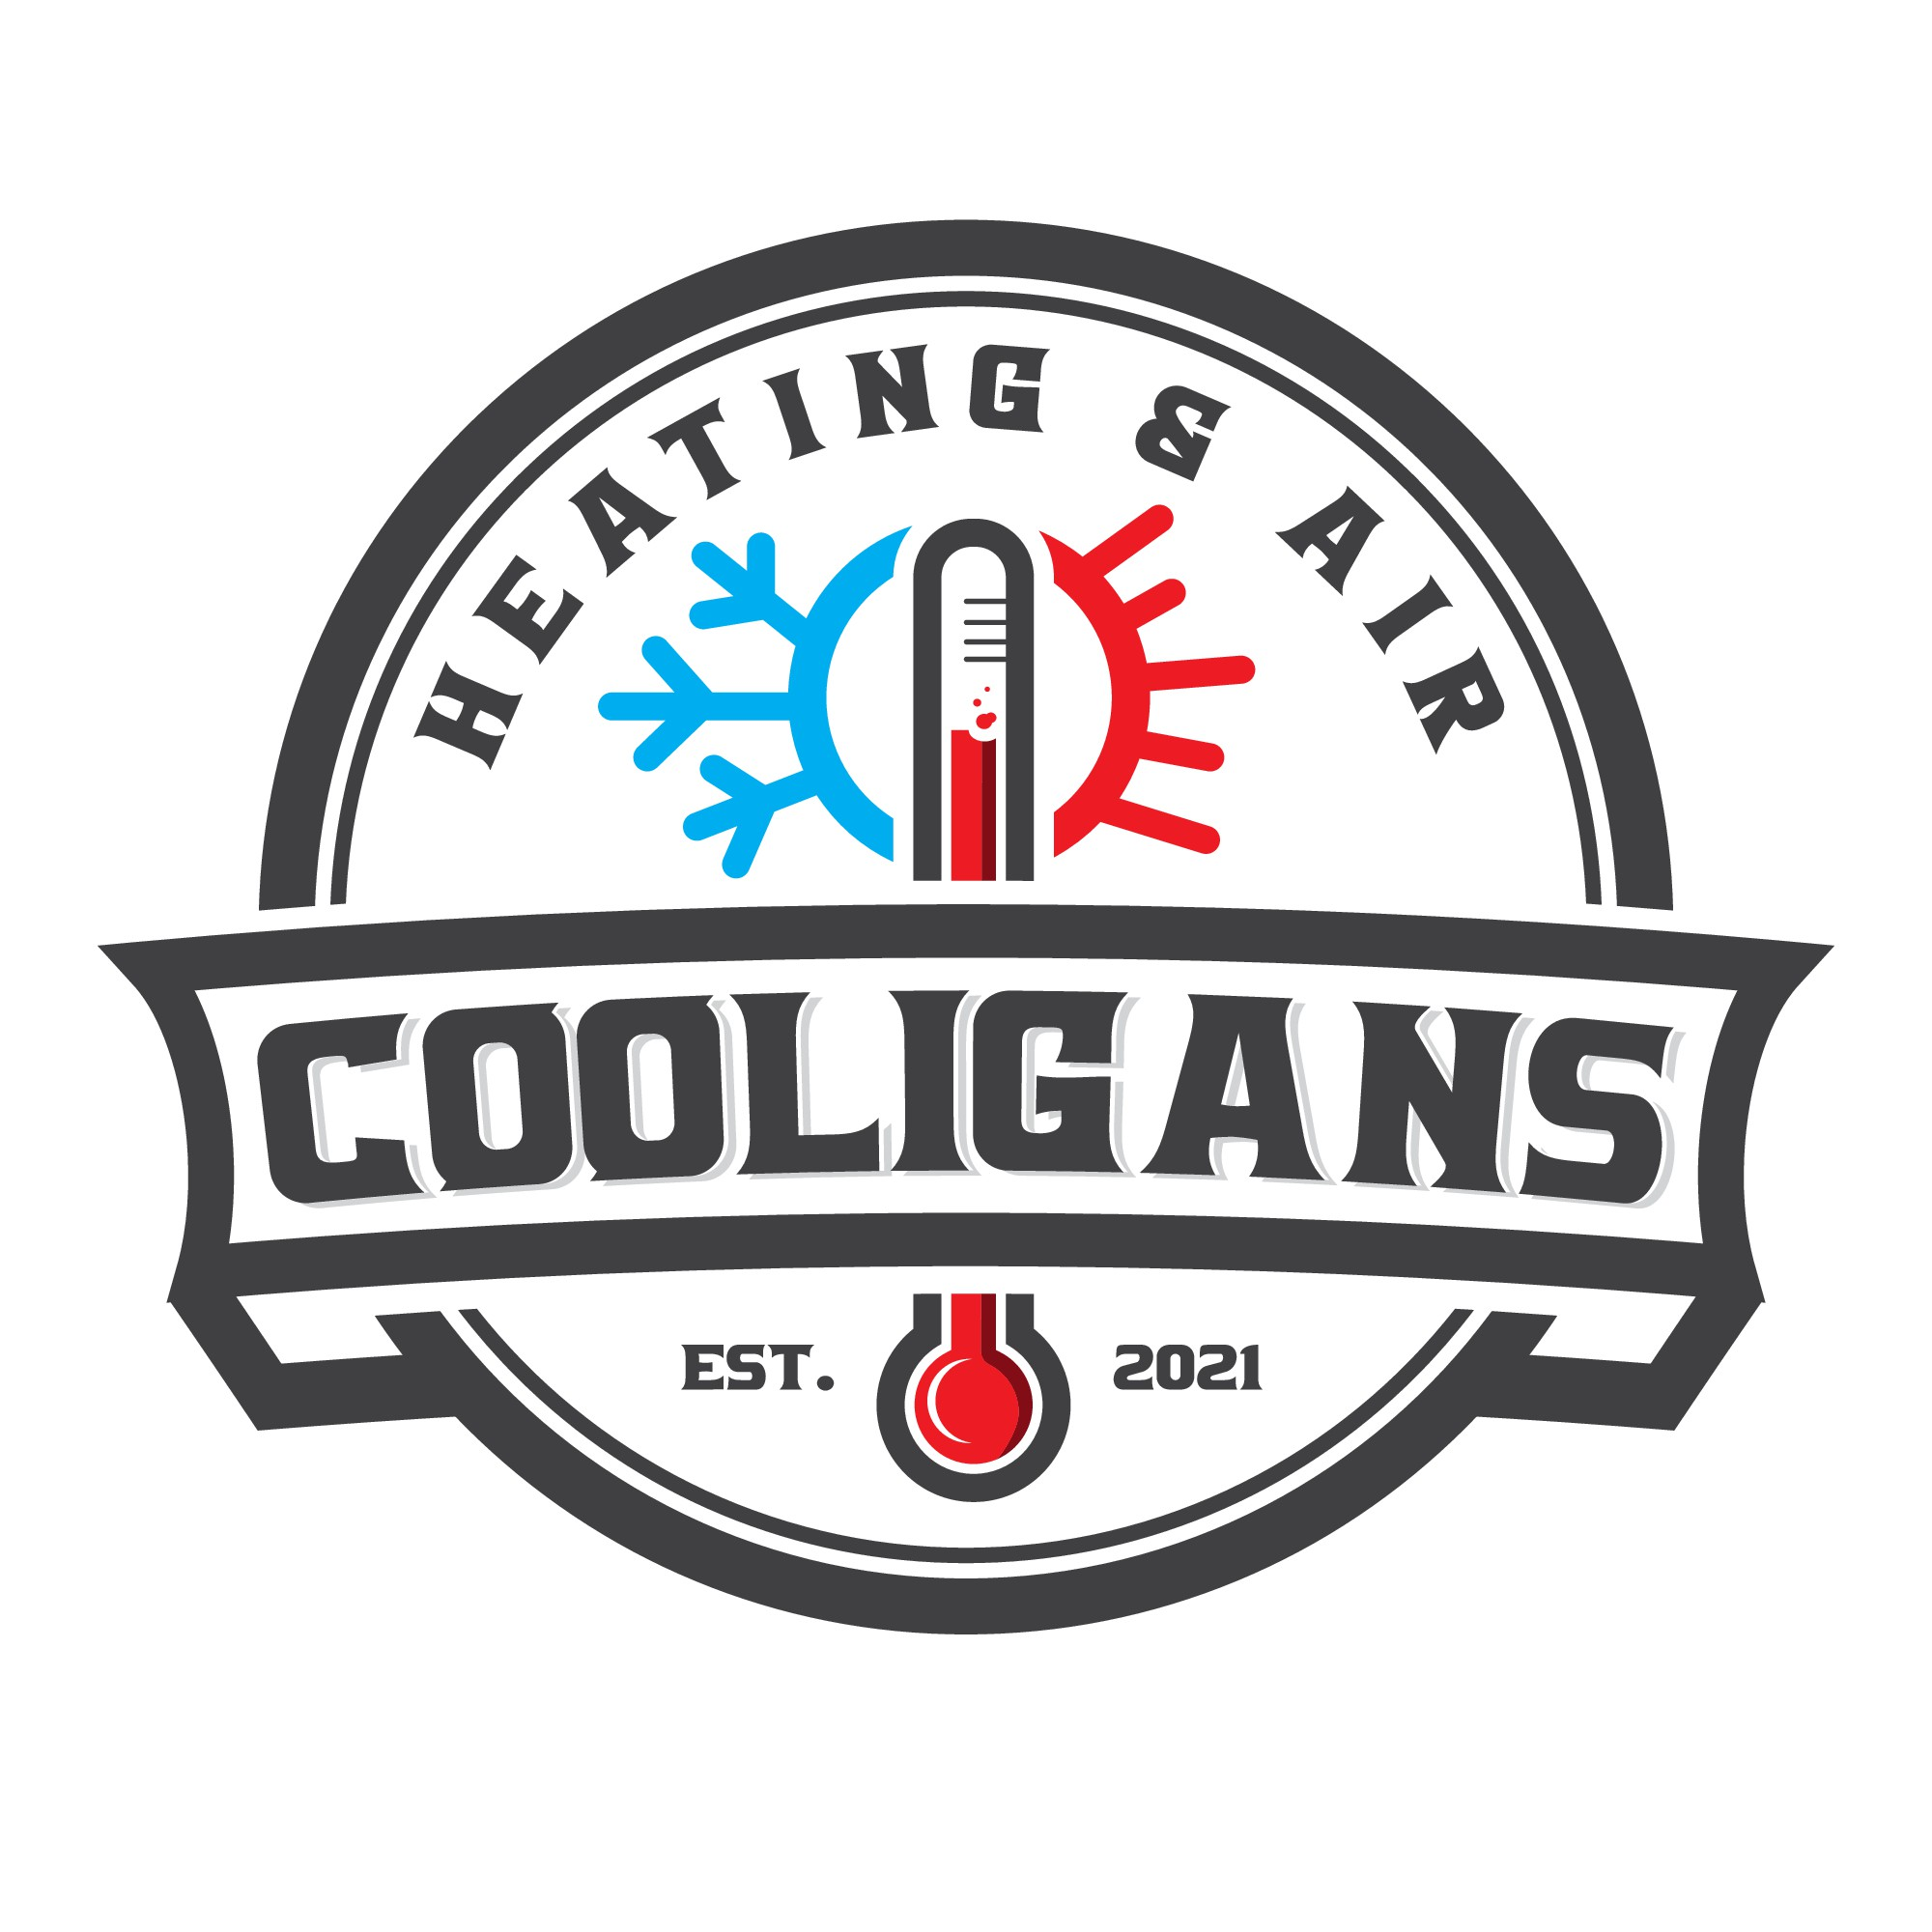 Please! Need help with a logo design to represent our heating and air conditioning company